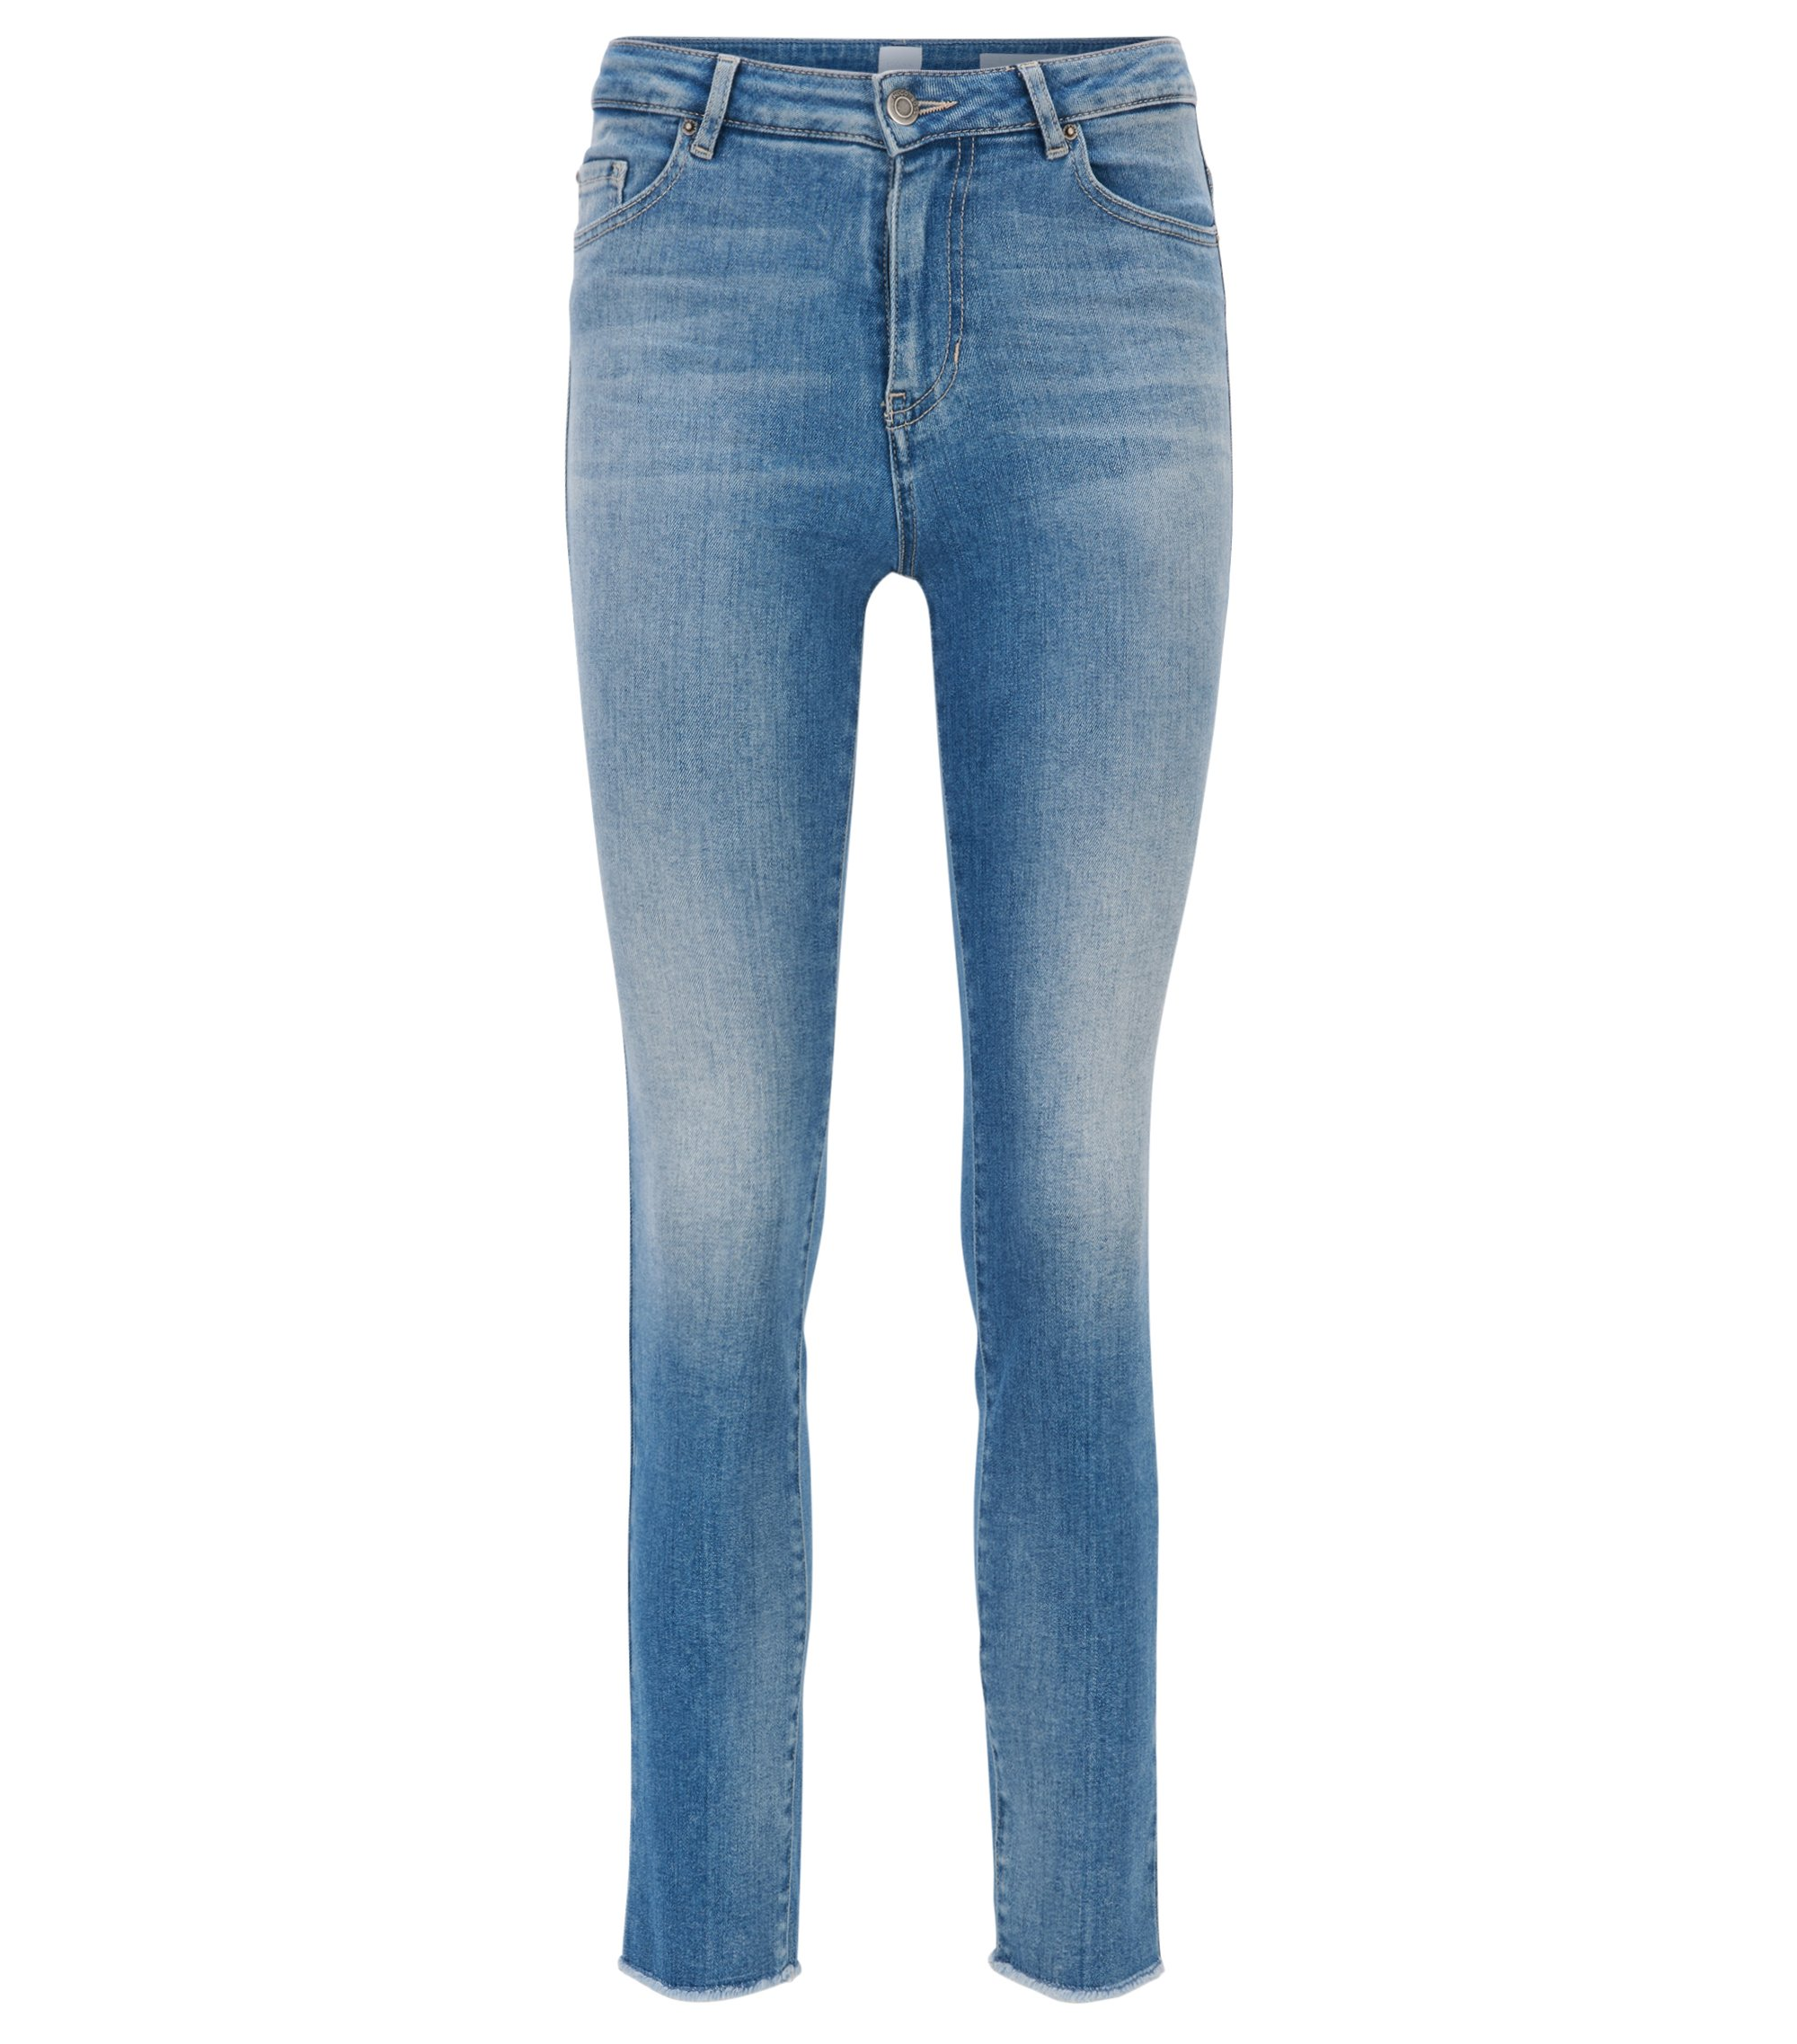 Skinny-Fit Jeans aus italienischem Stretch-Denim in Cropped-Länge, Blau